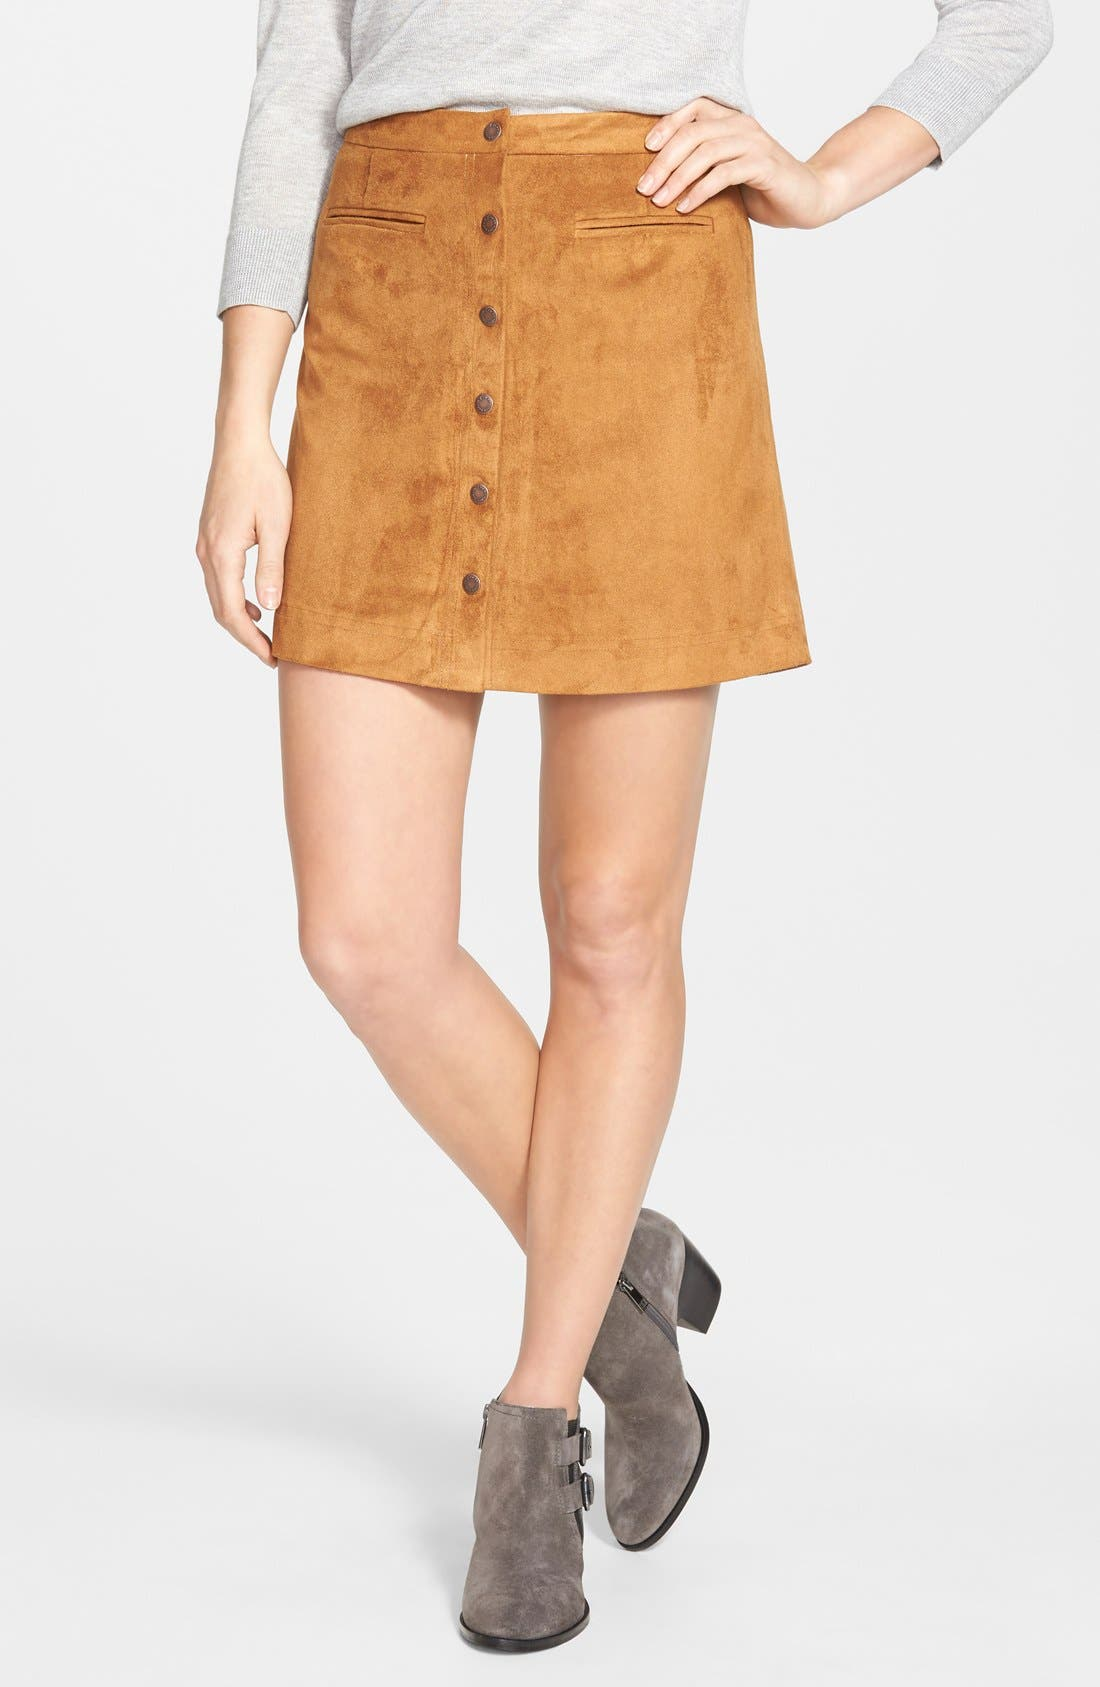 Alternate Image 1 Selected - Two by Vince Camuto Faux Suede A-Line Miniskirt